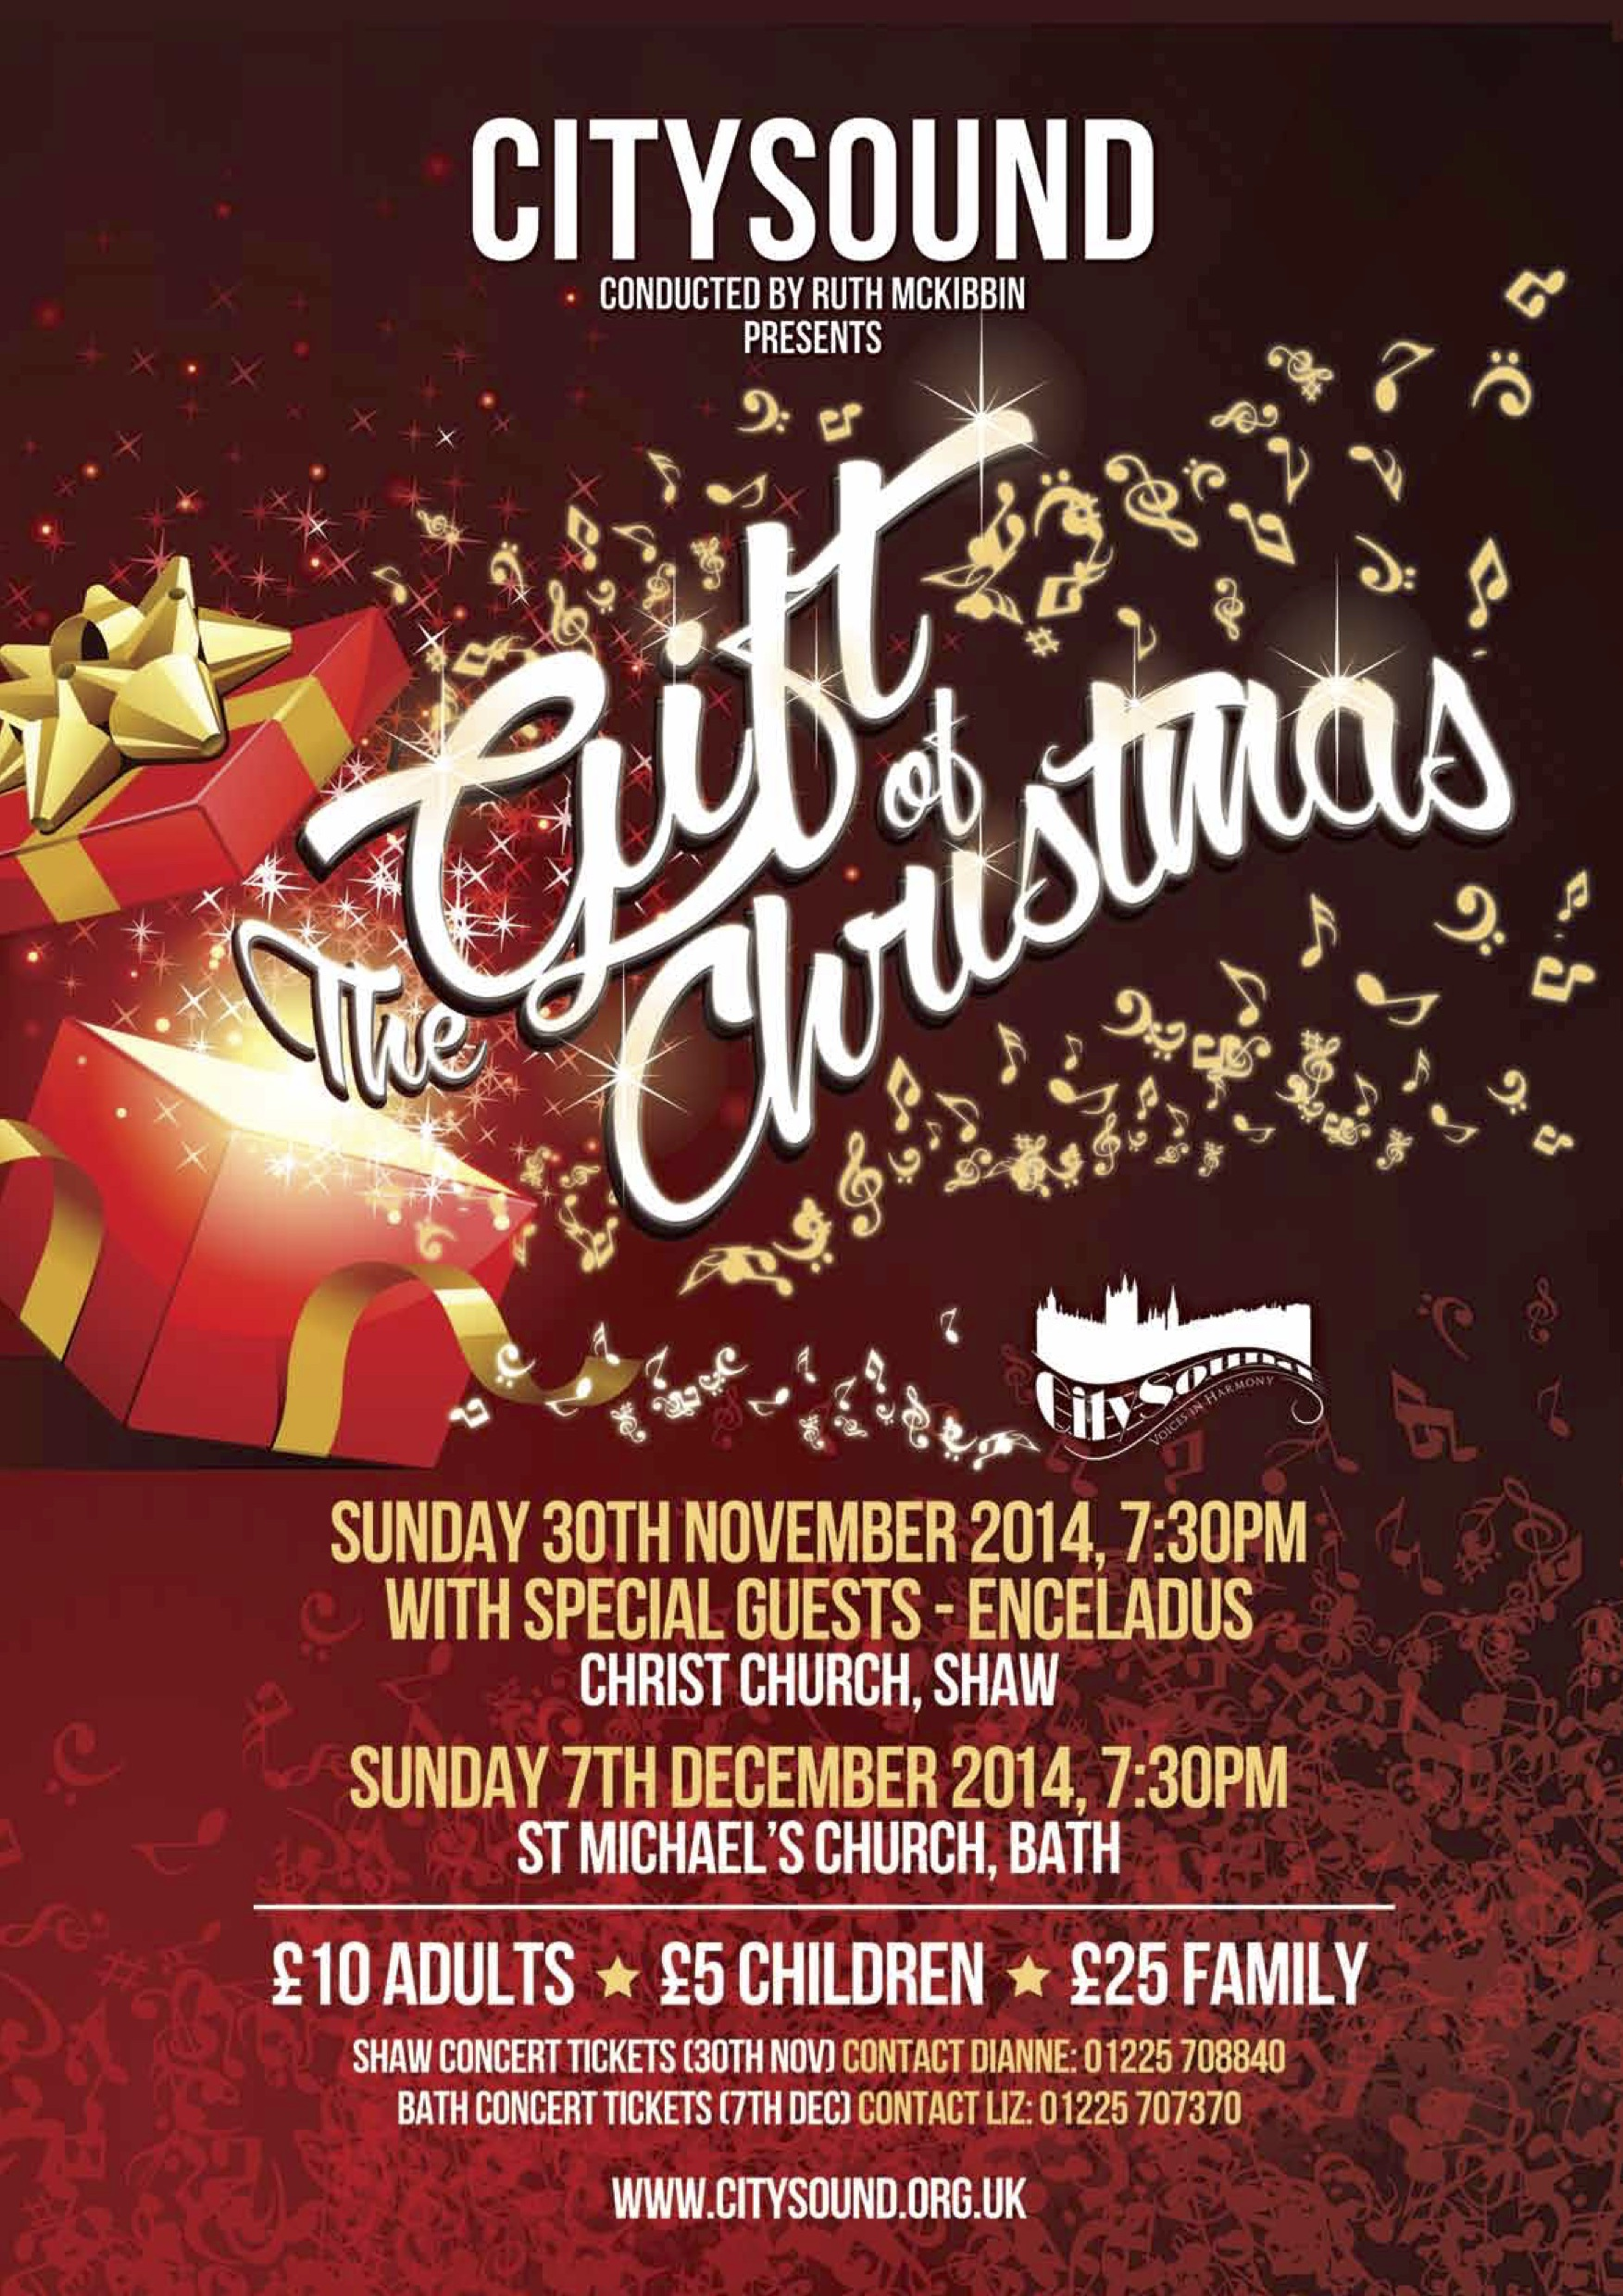 citysound in concert the gift of christmas